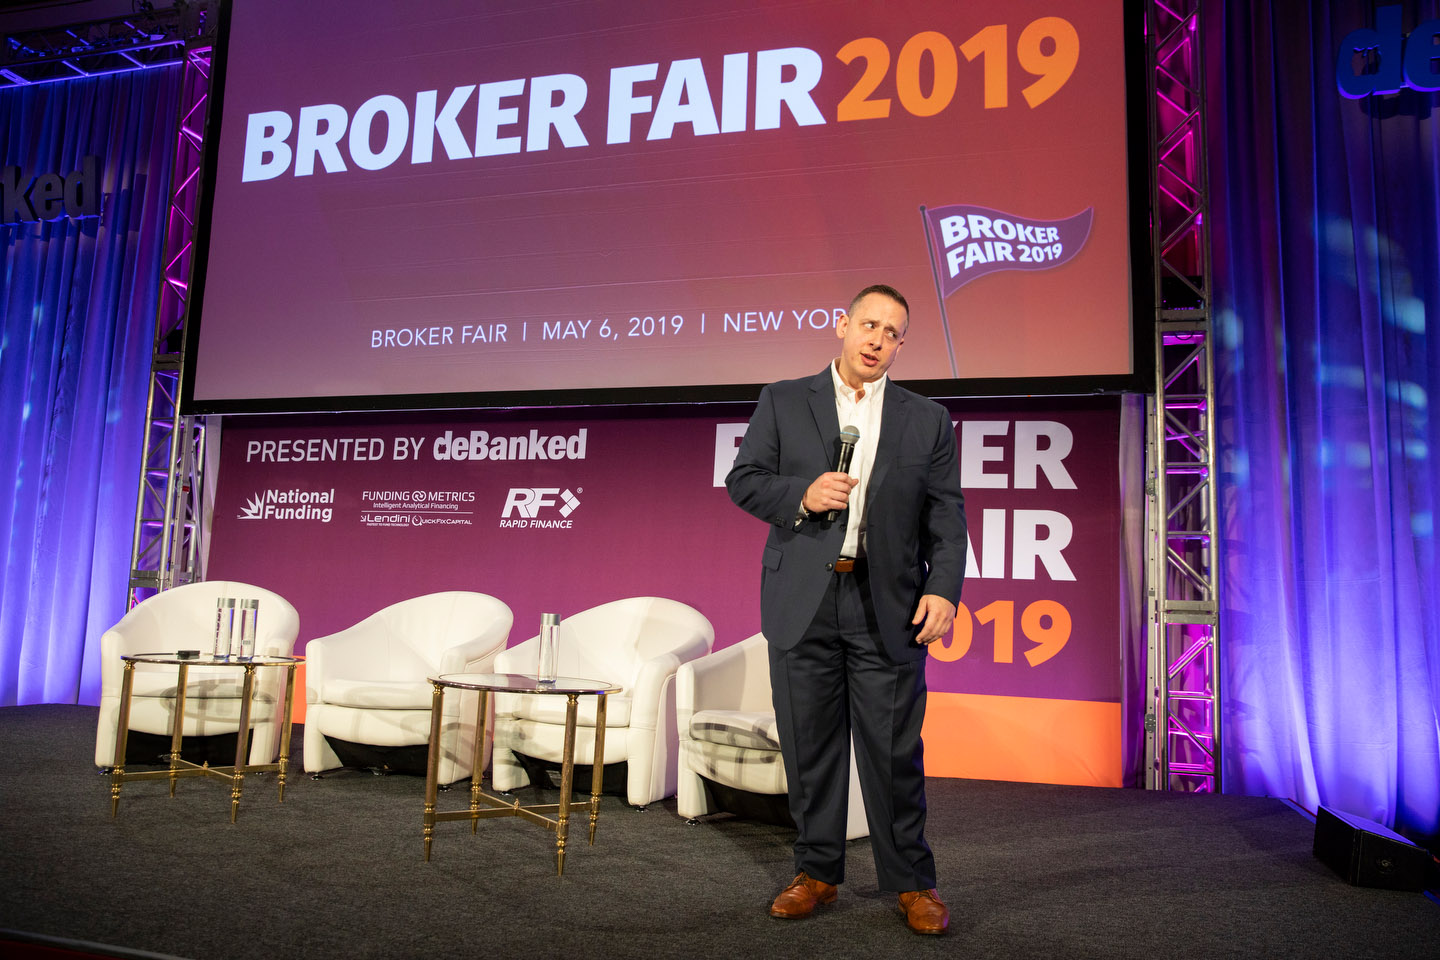 Broker Fair 2019 - Presented by deBanked - 218